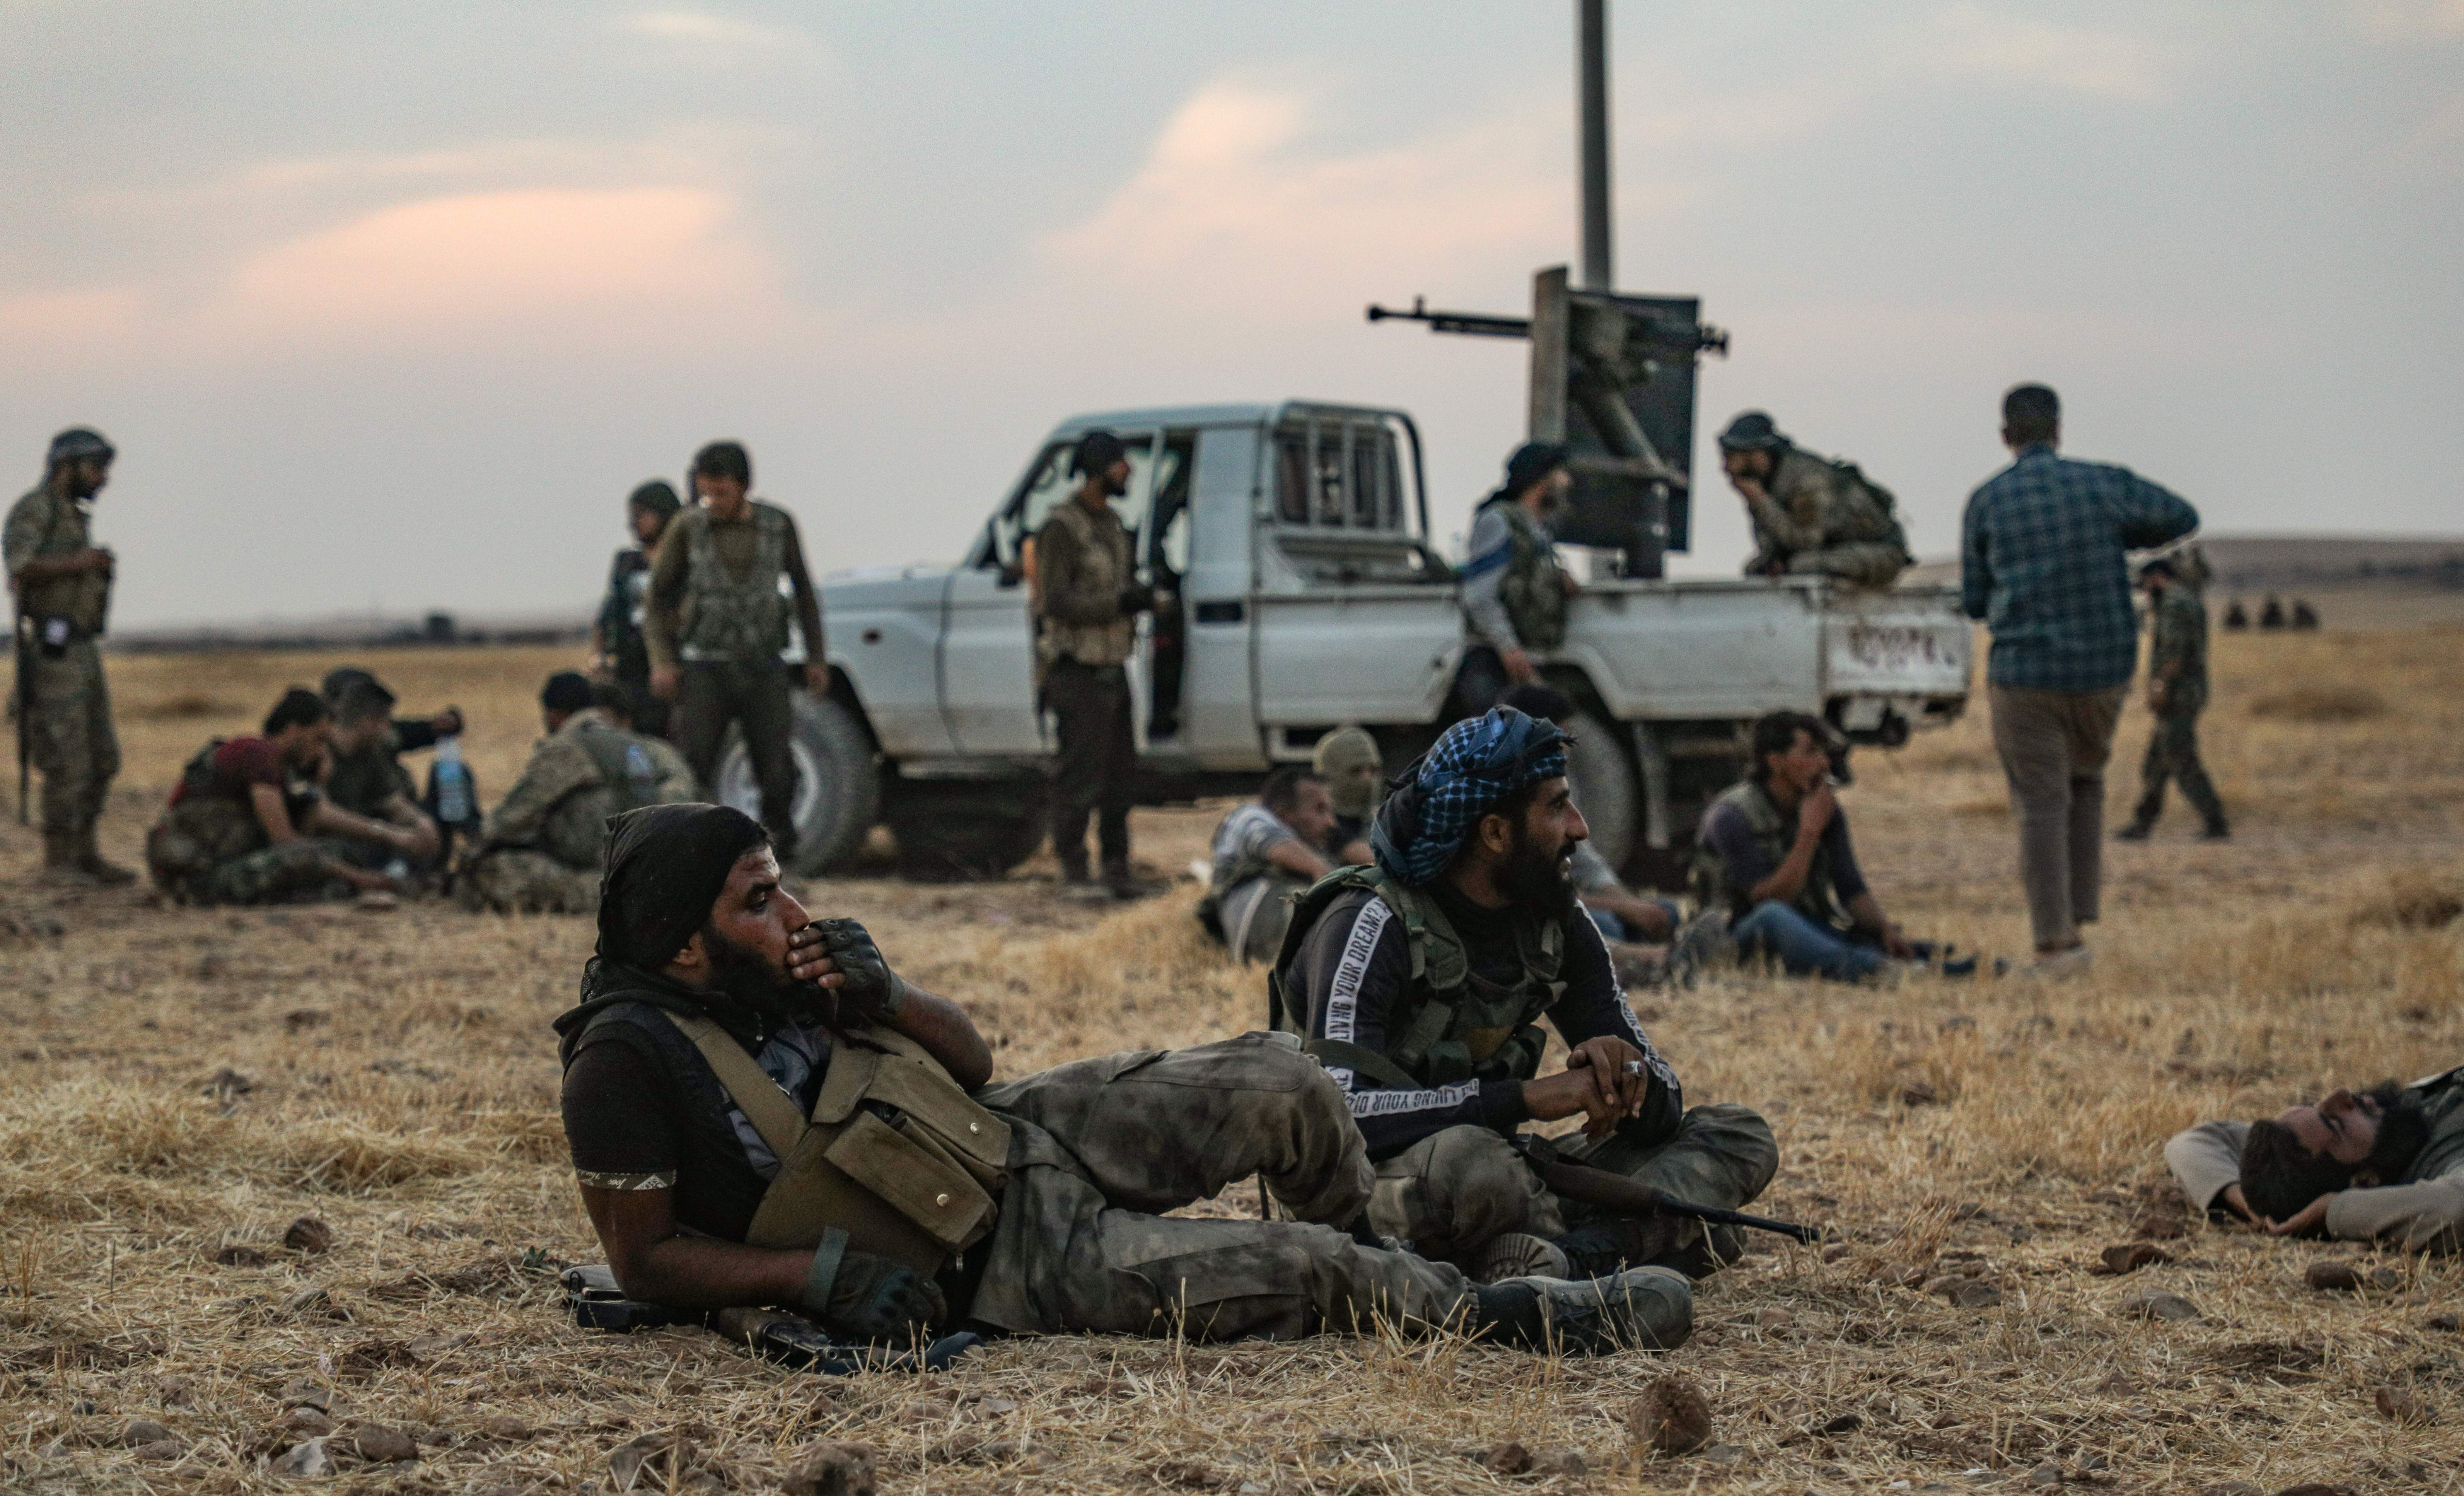 Turkish-backed Syrian fighters rest in front of a truck.